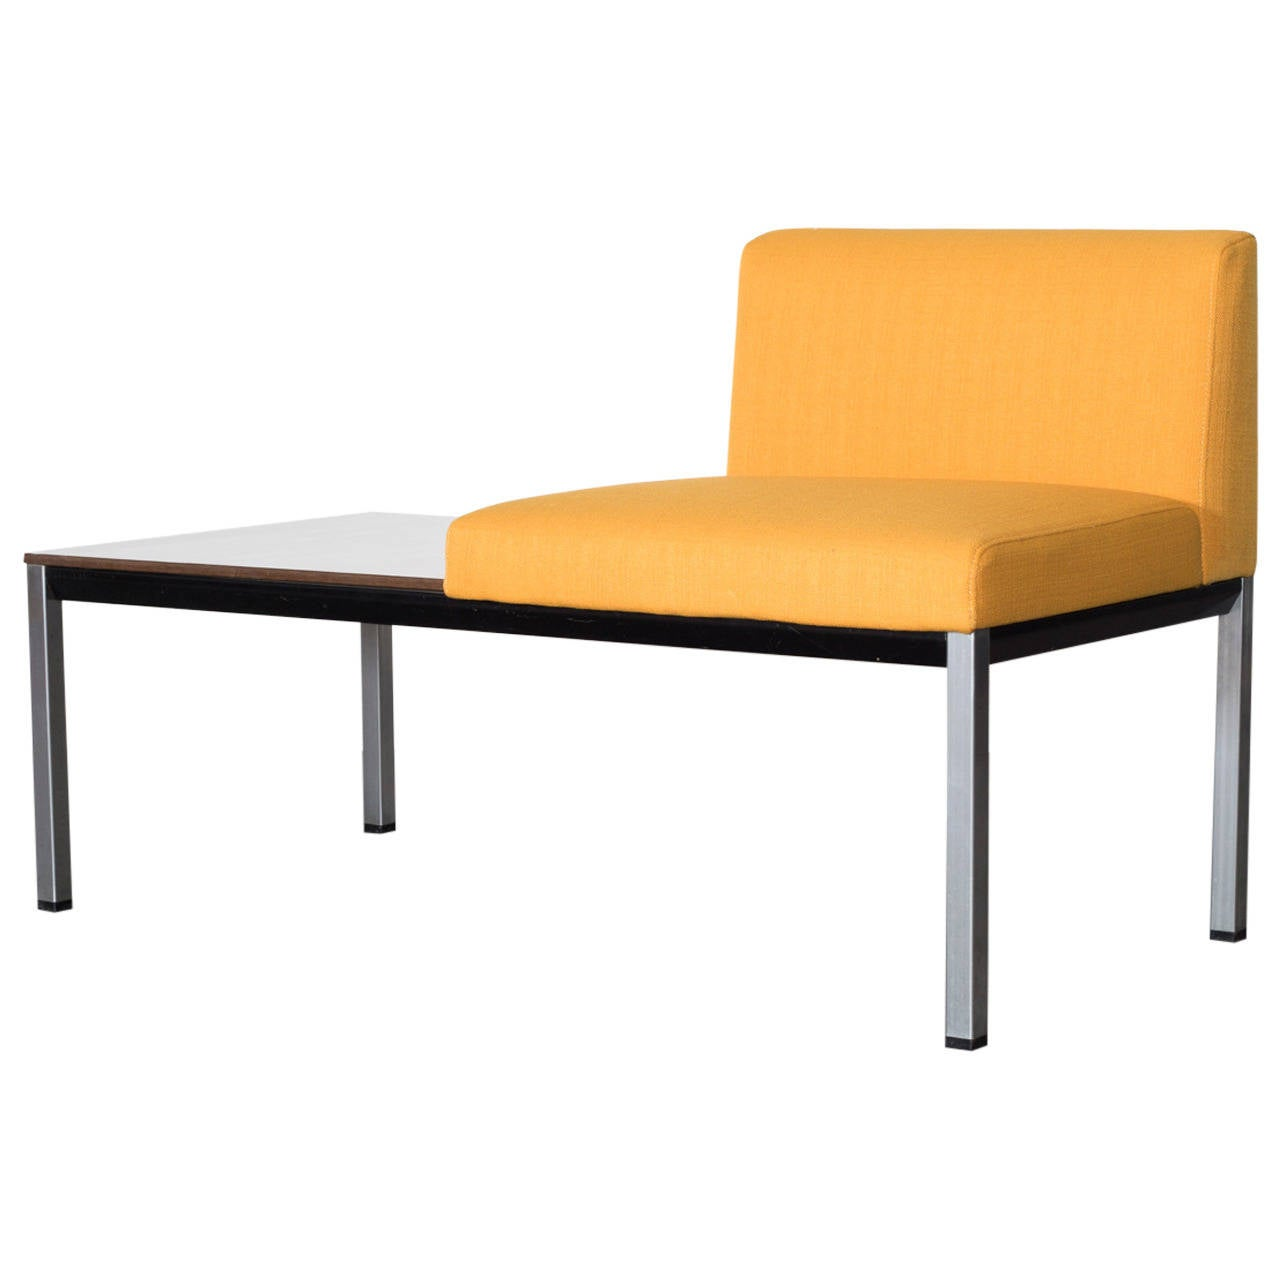 Friso Kramer Quot Facet Quot Bench With Side Table At 1stdibs